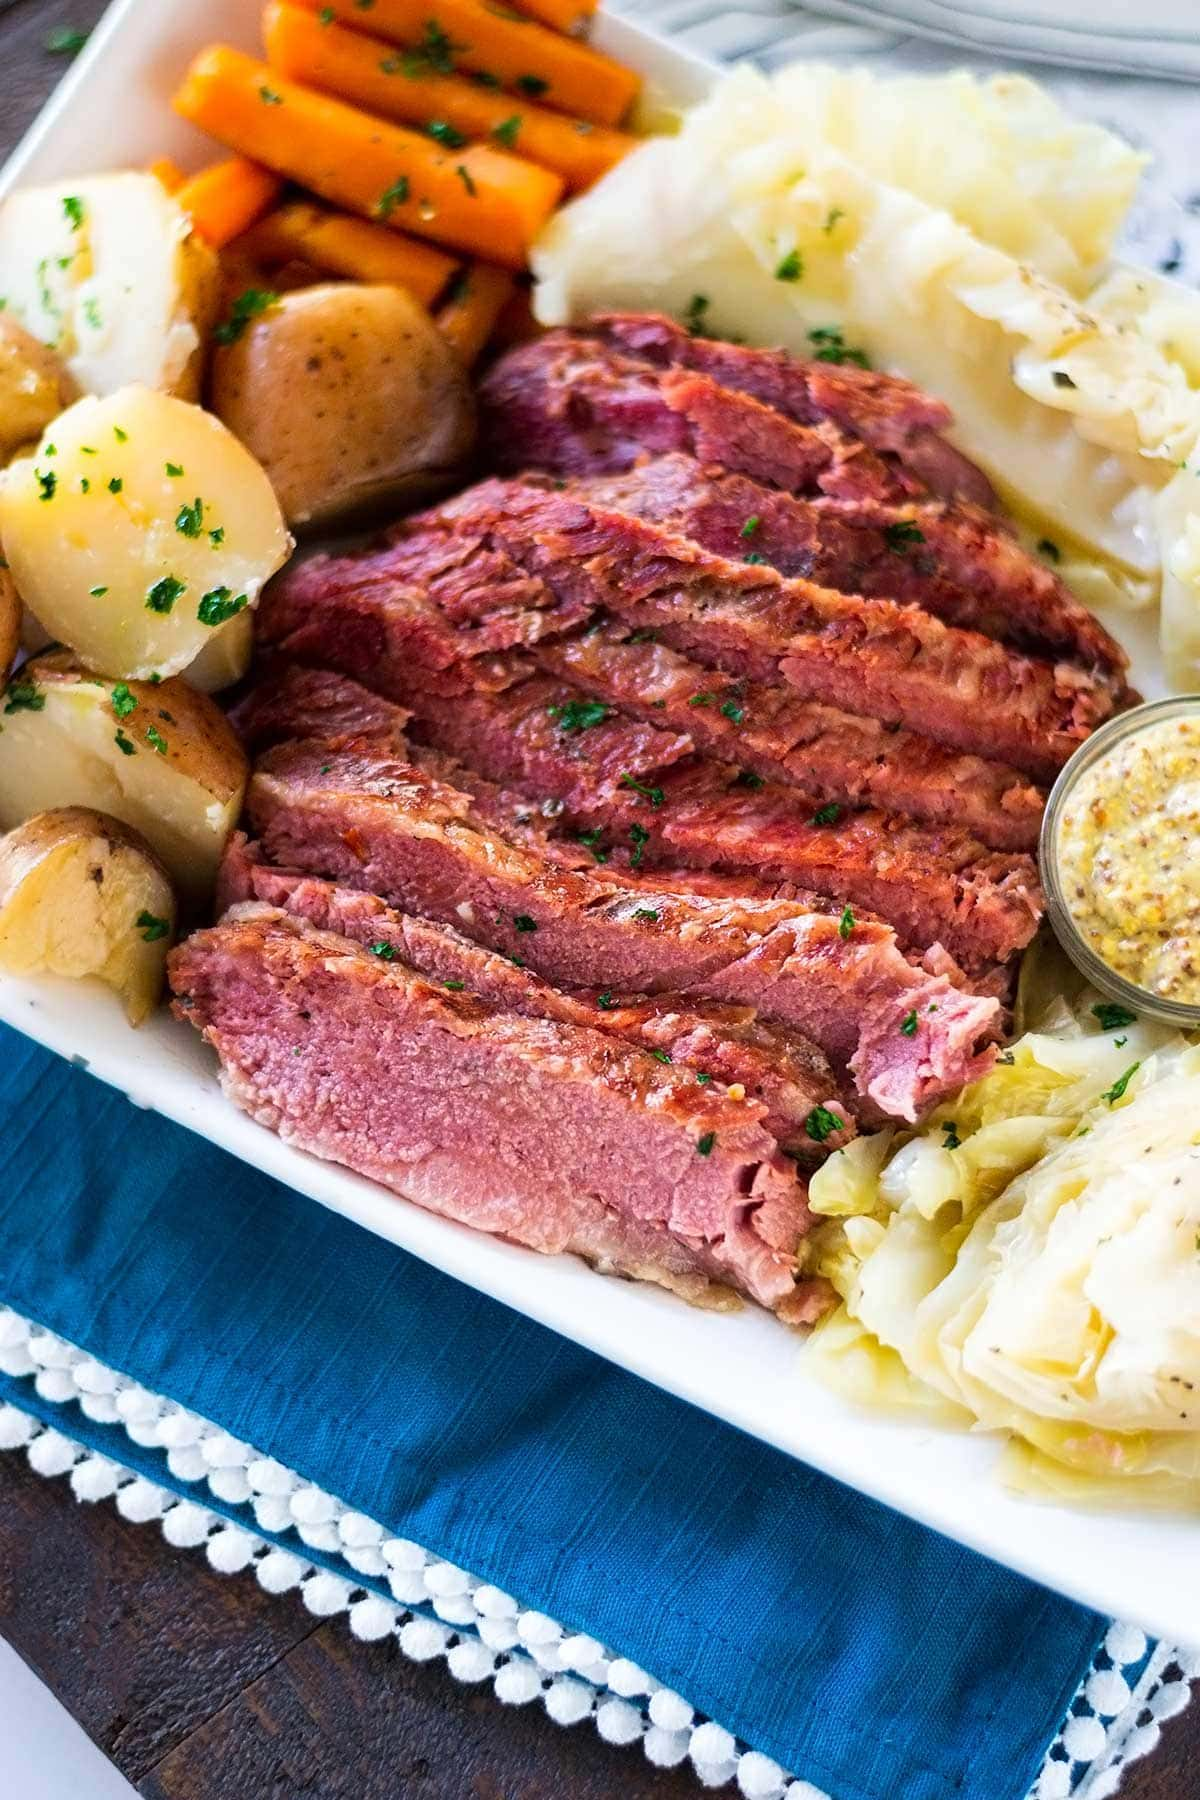 Sliced Slow cooker corned beef and cabbage on a white serving platter with red potatoes, carrots and spicy whole grain mustard.